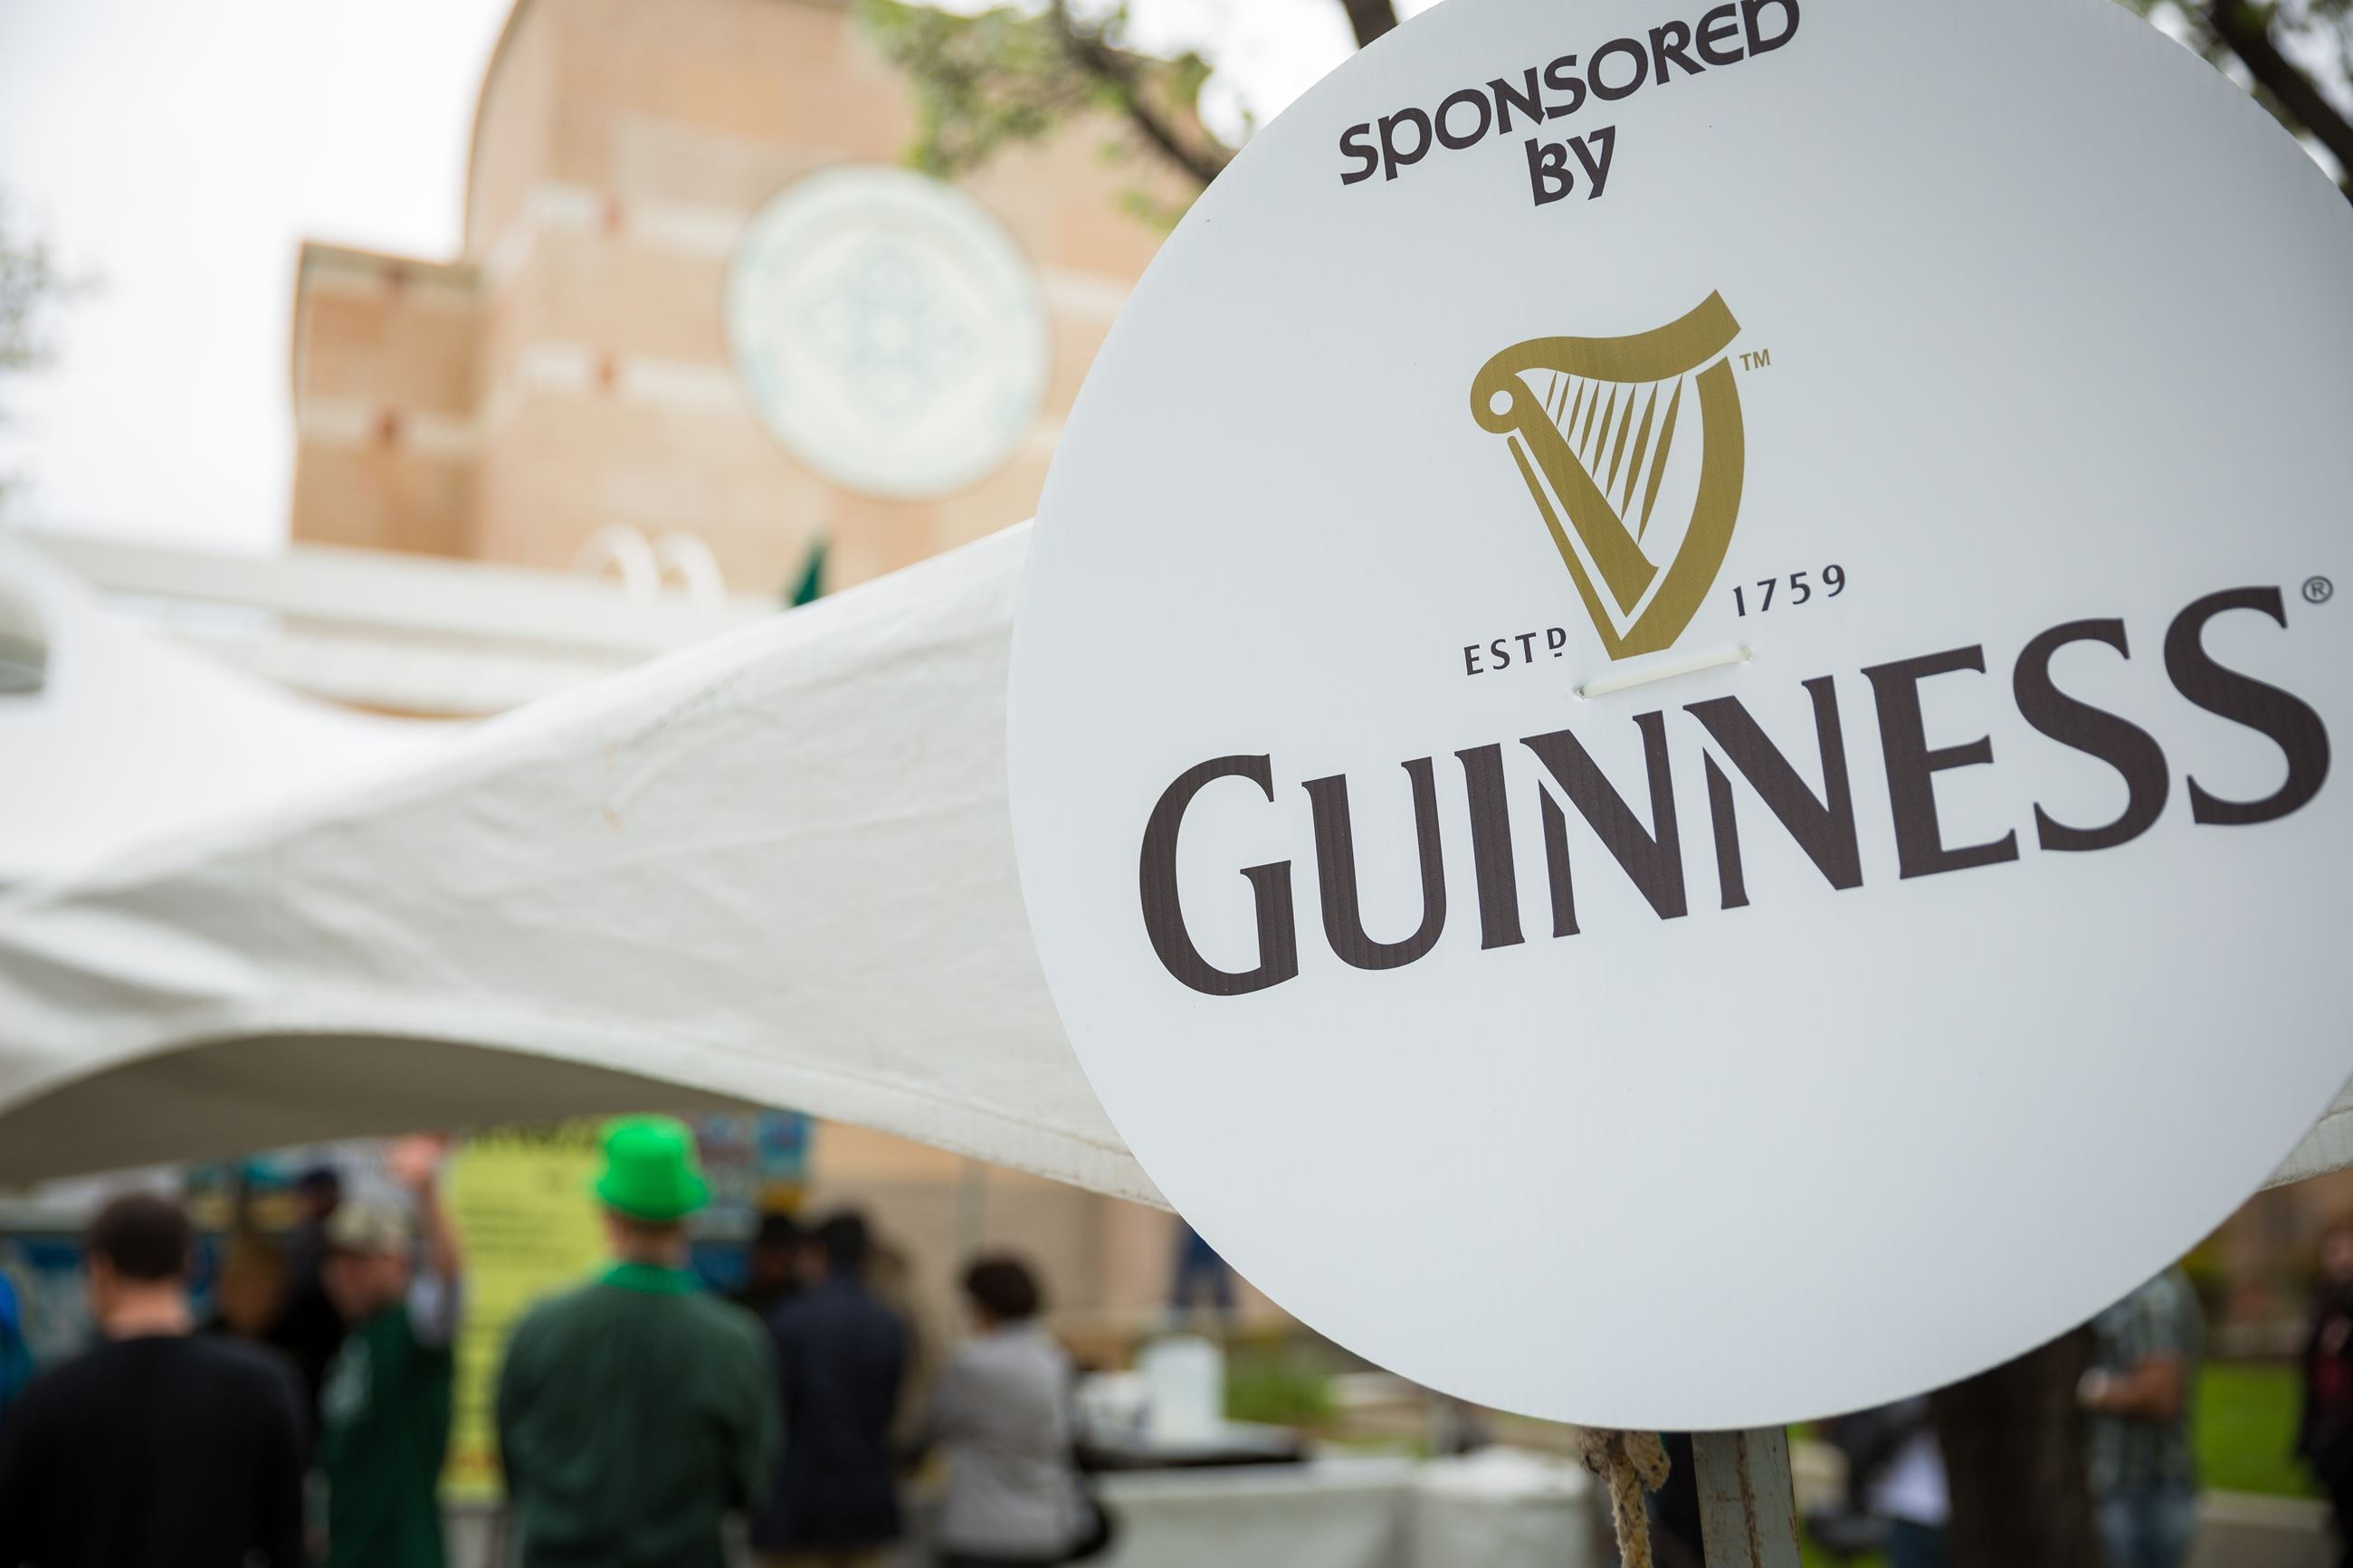 Guinness Beer Booth at St. Pat's